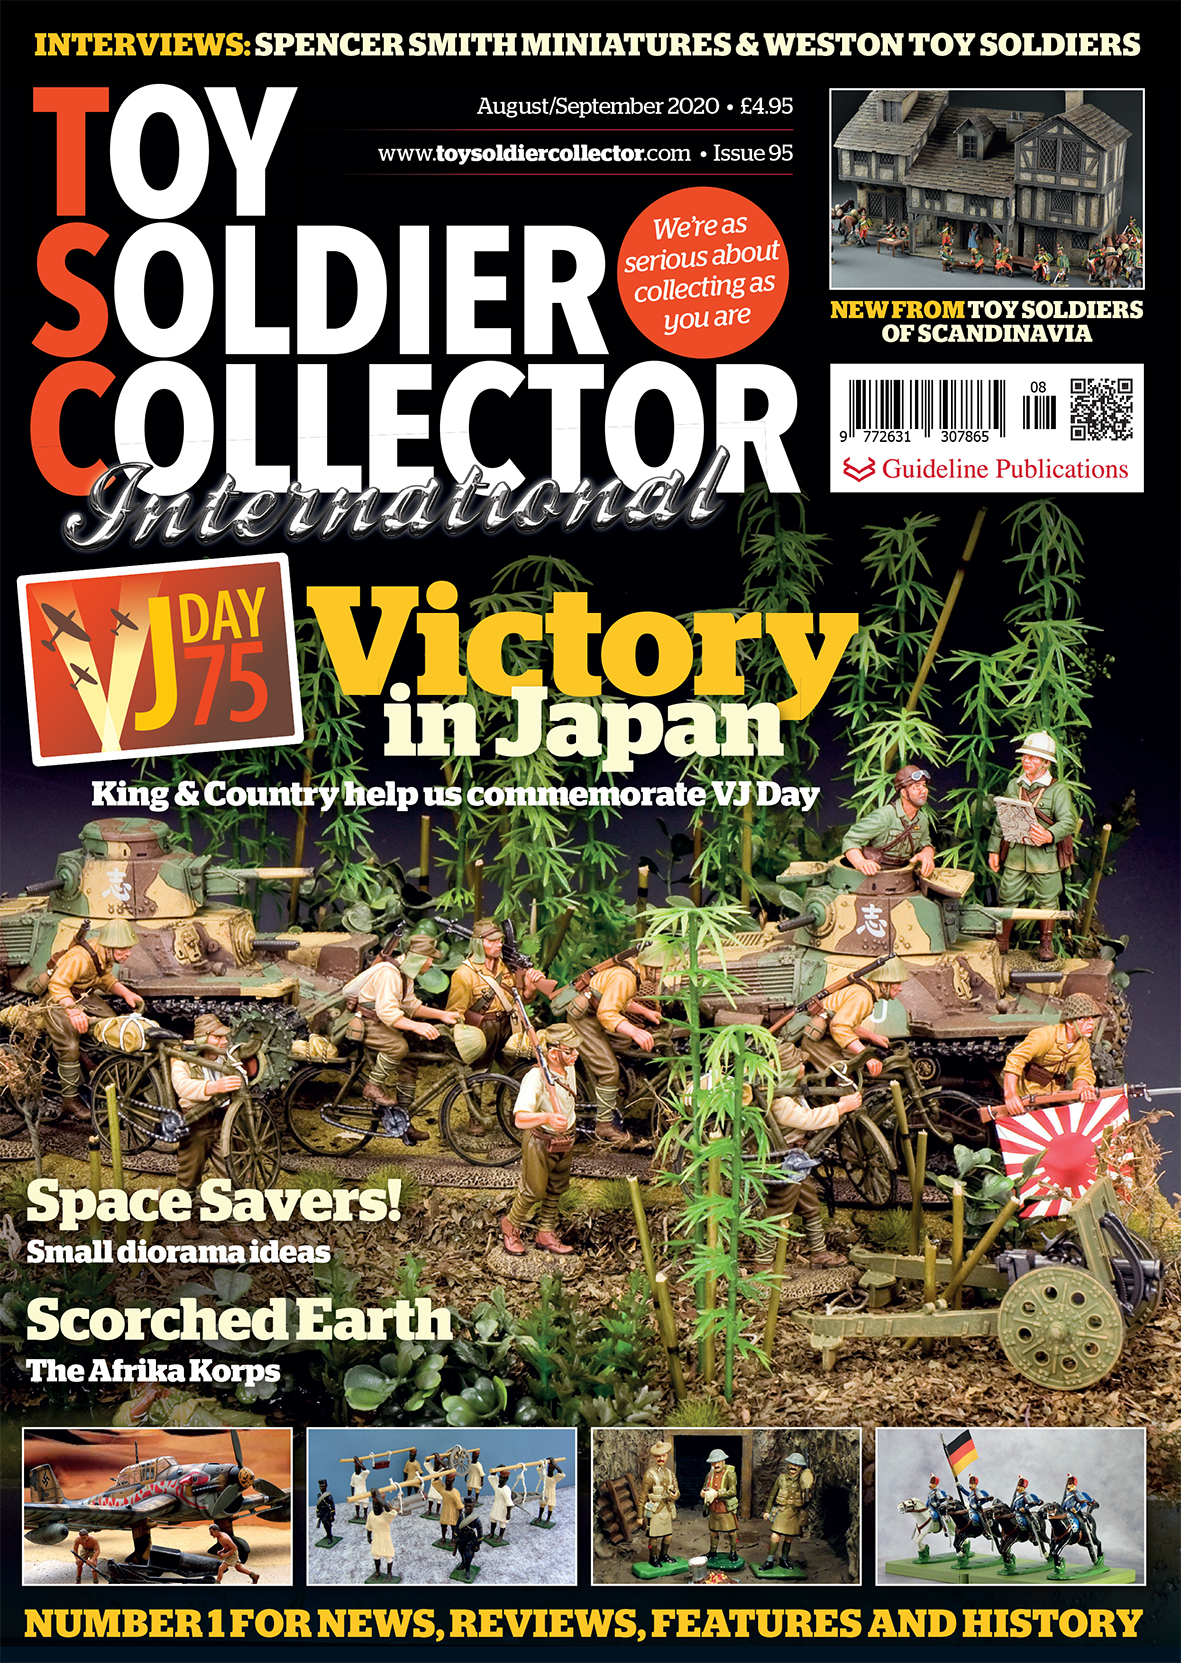 Guideline Publications Toy Soldier Collector #95 Aug/Sept 20 - Issue 95